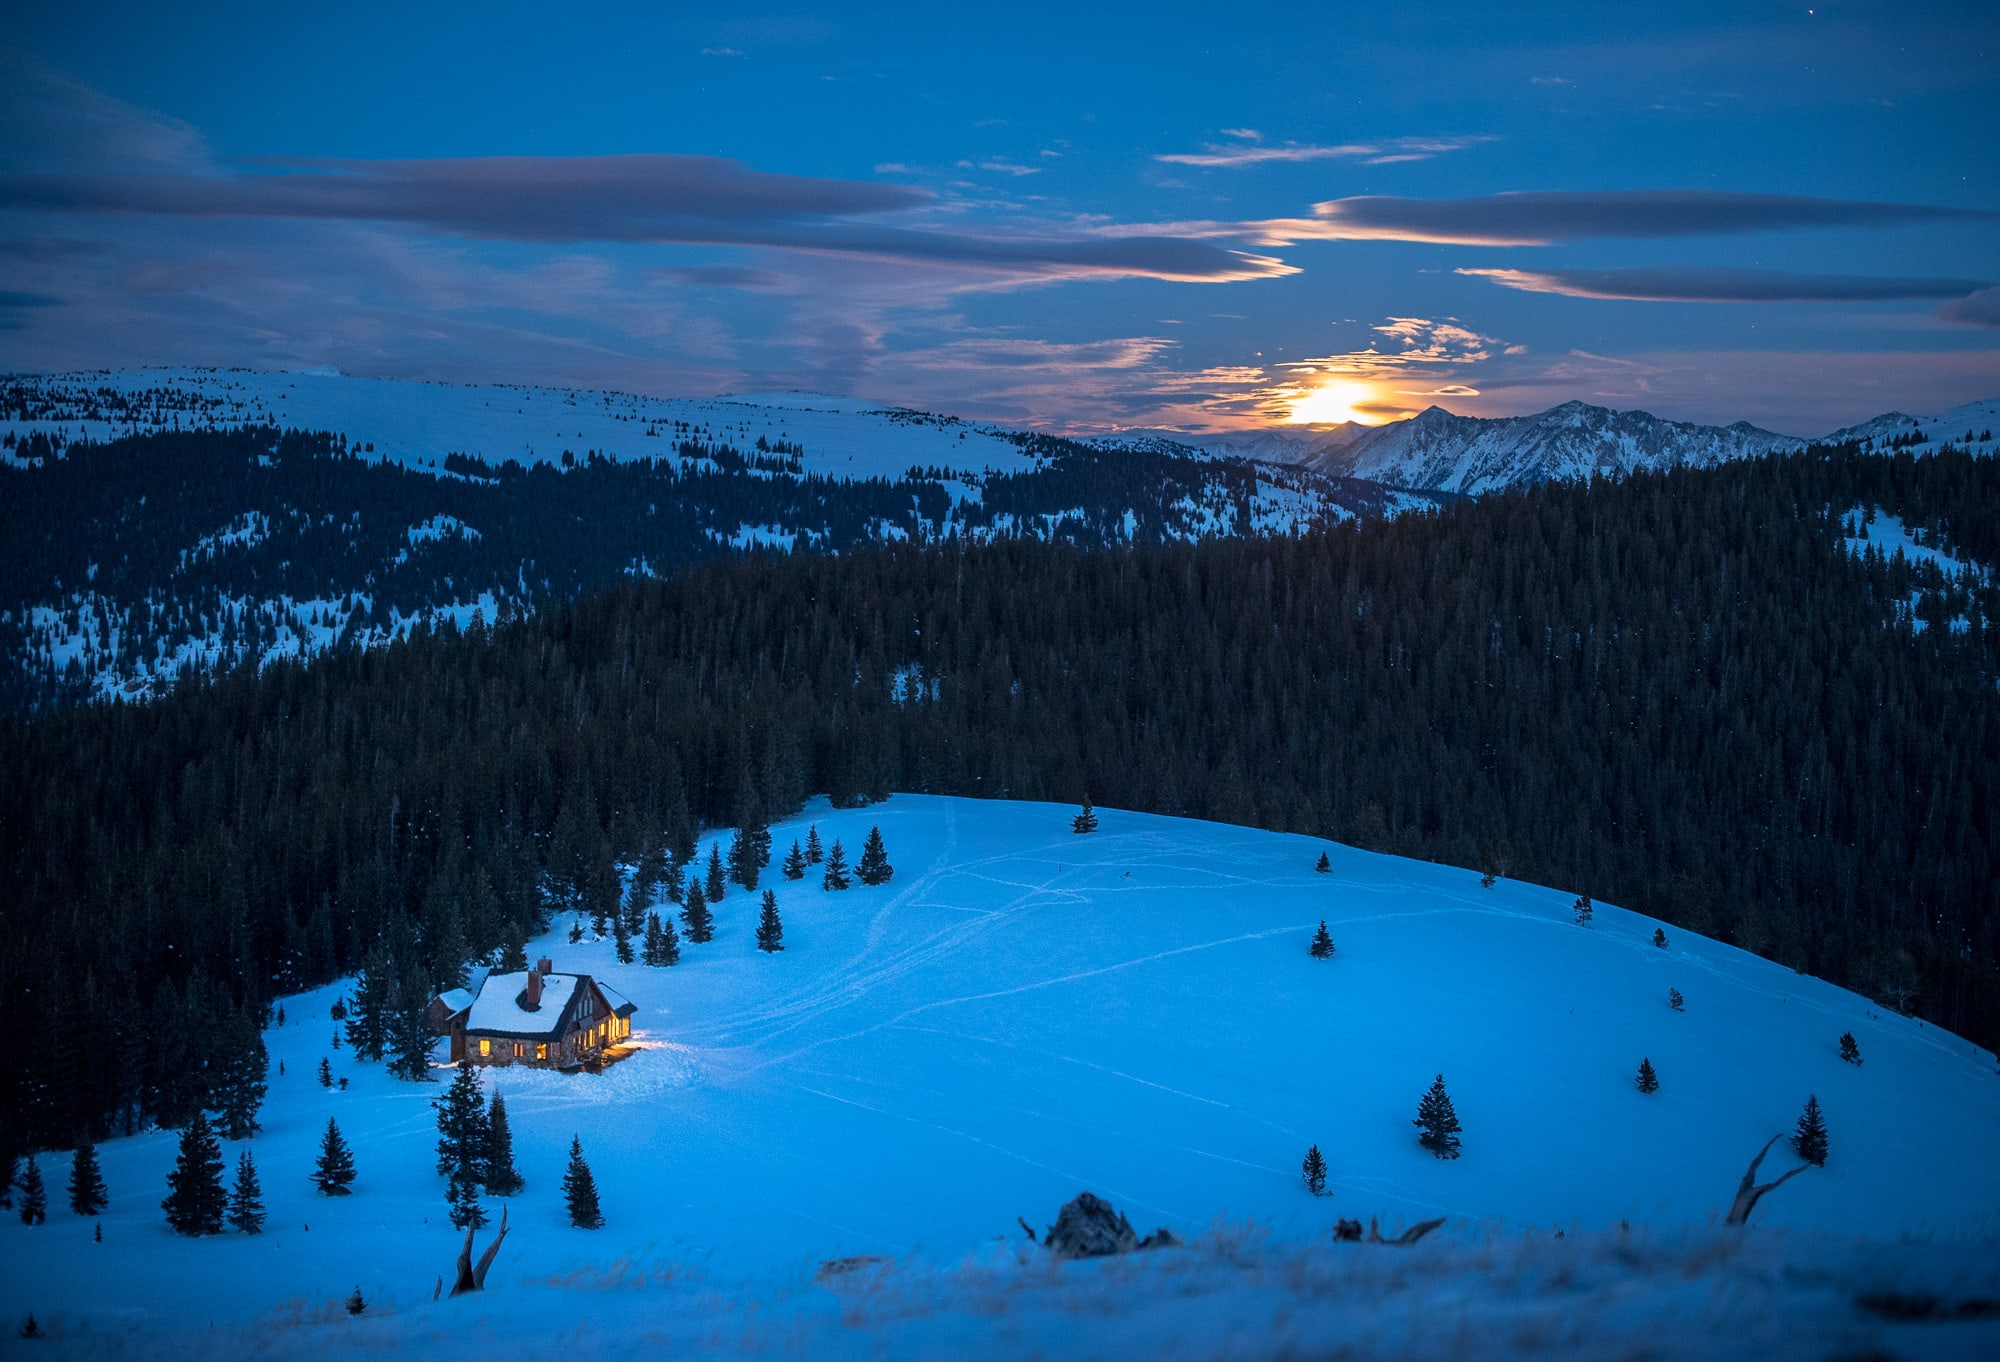 Reasons to take a backcountry hut trip: #3: Ski in , ski out access for less than the cost of a lift ticket